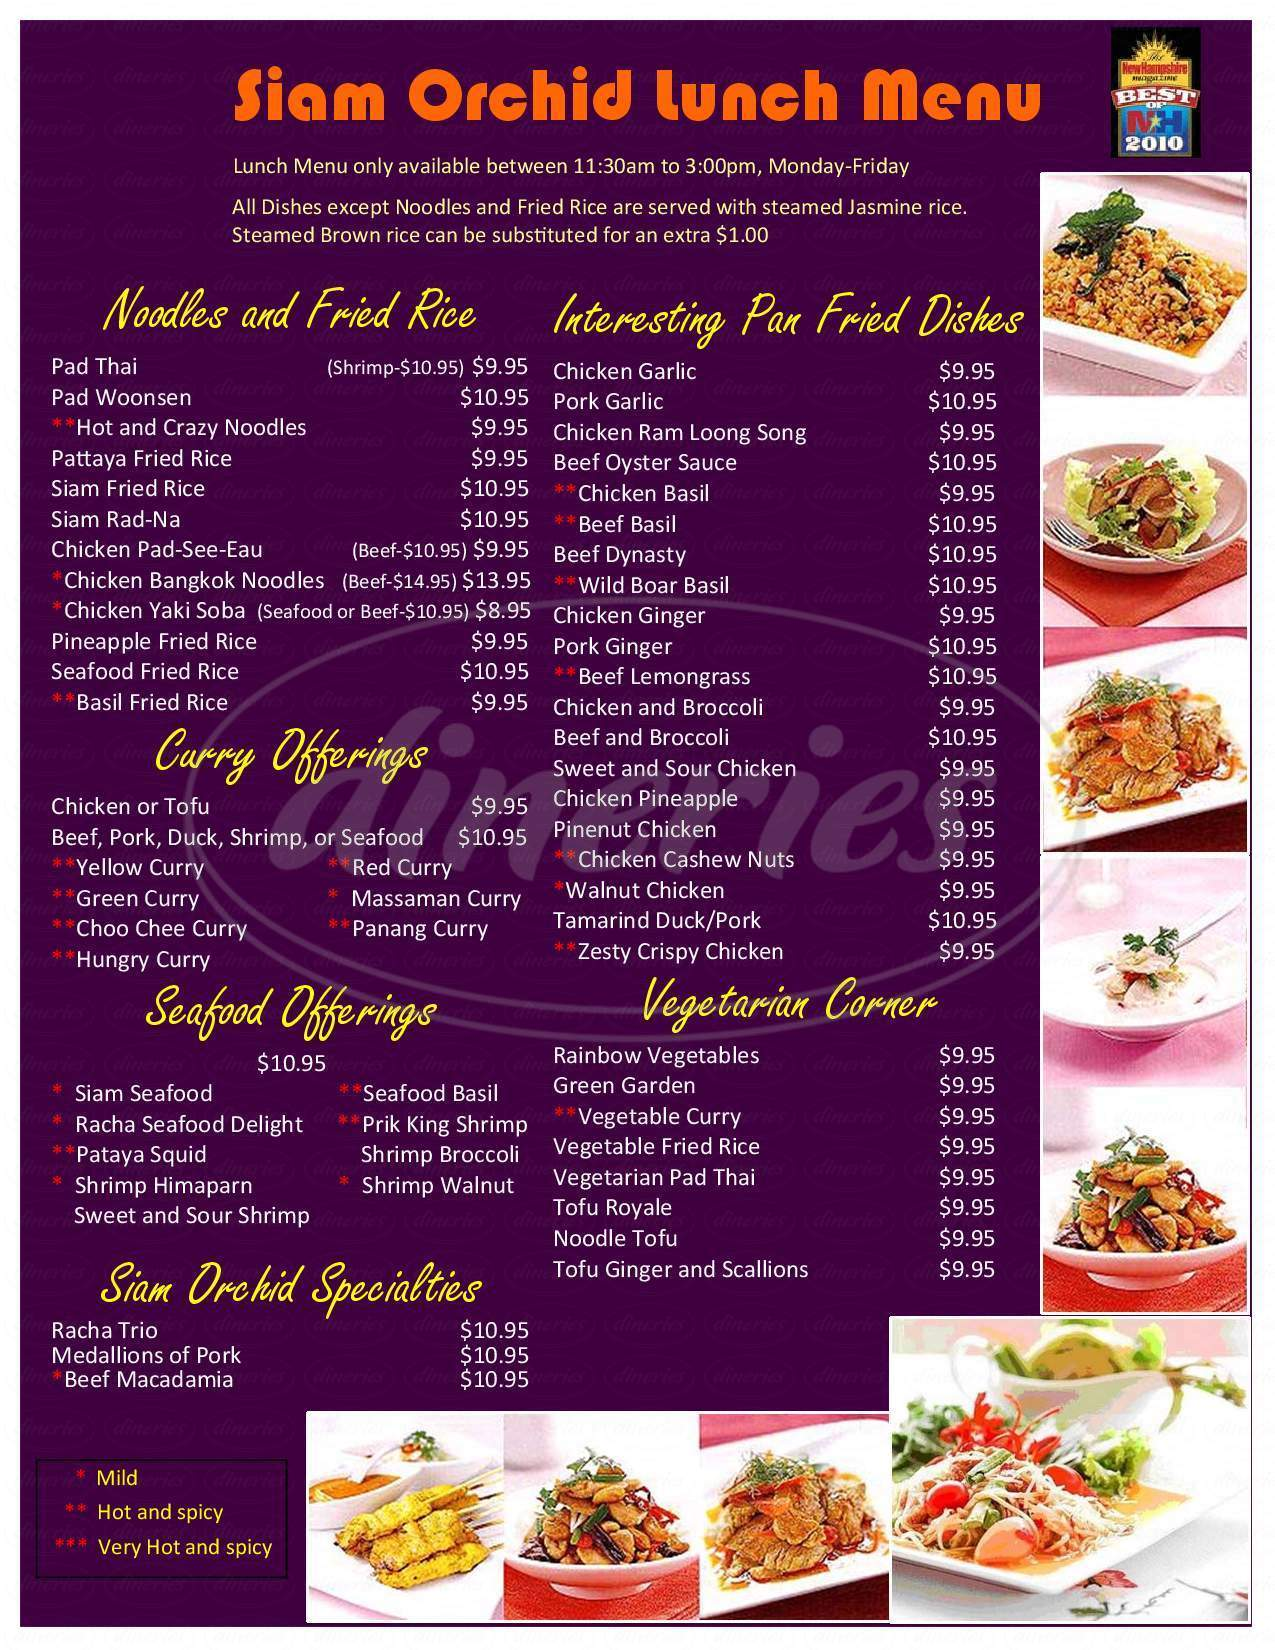 menu for Siam Orchid